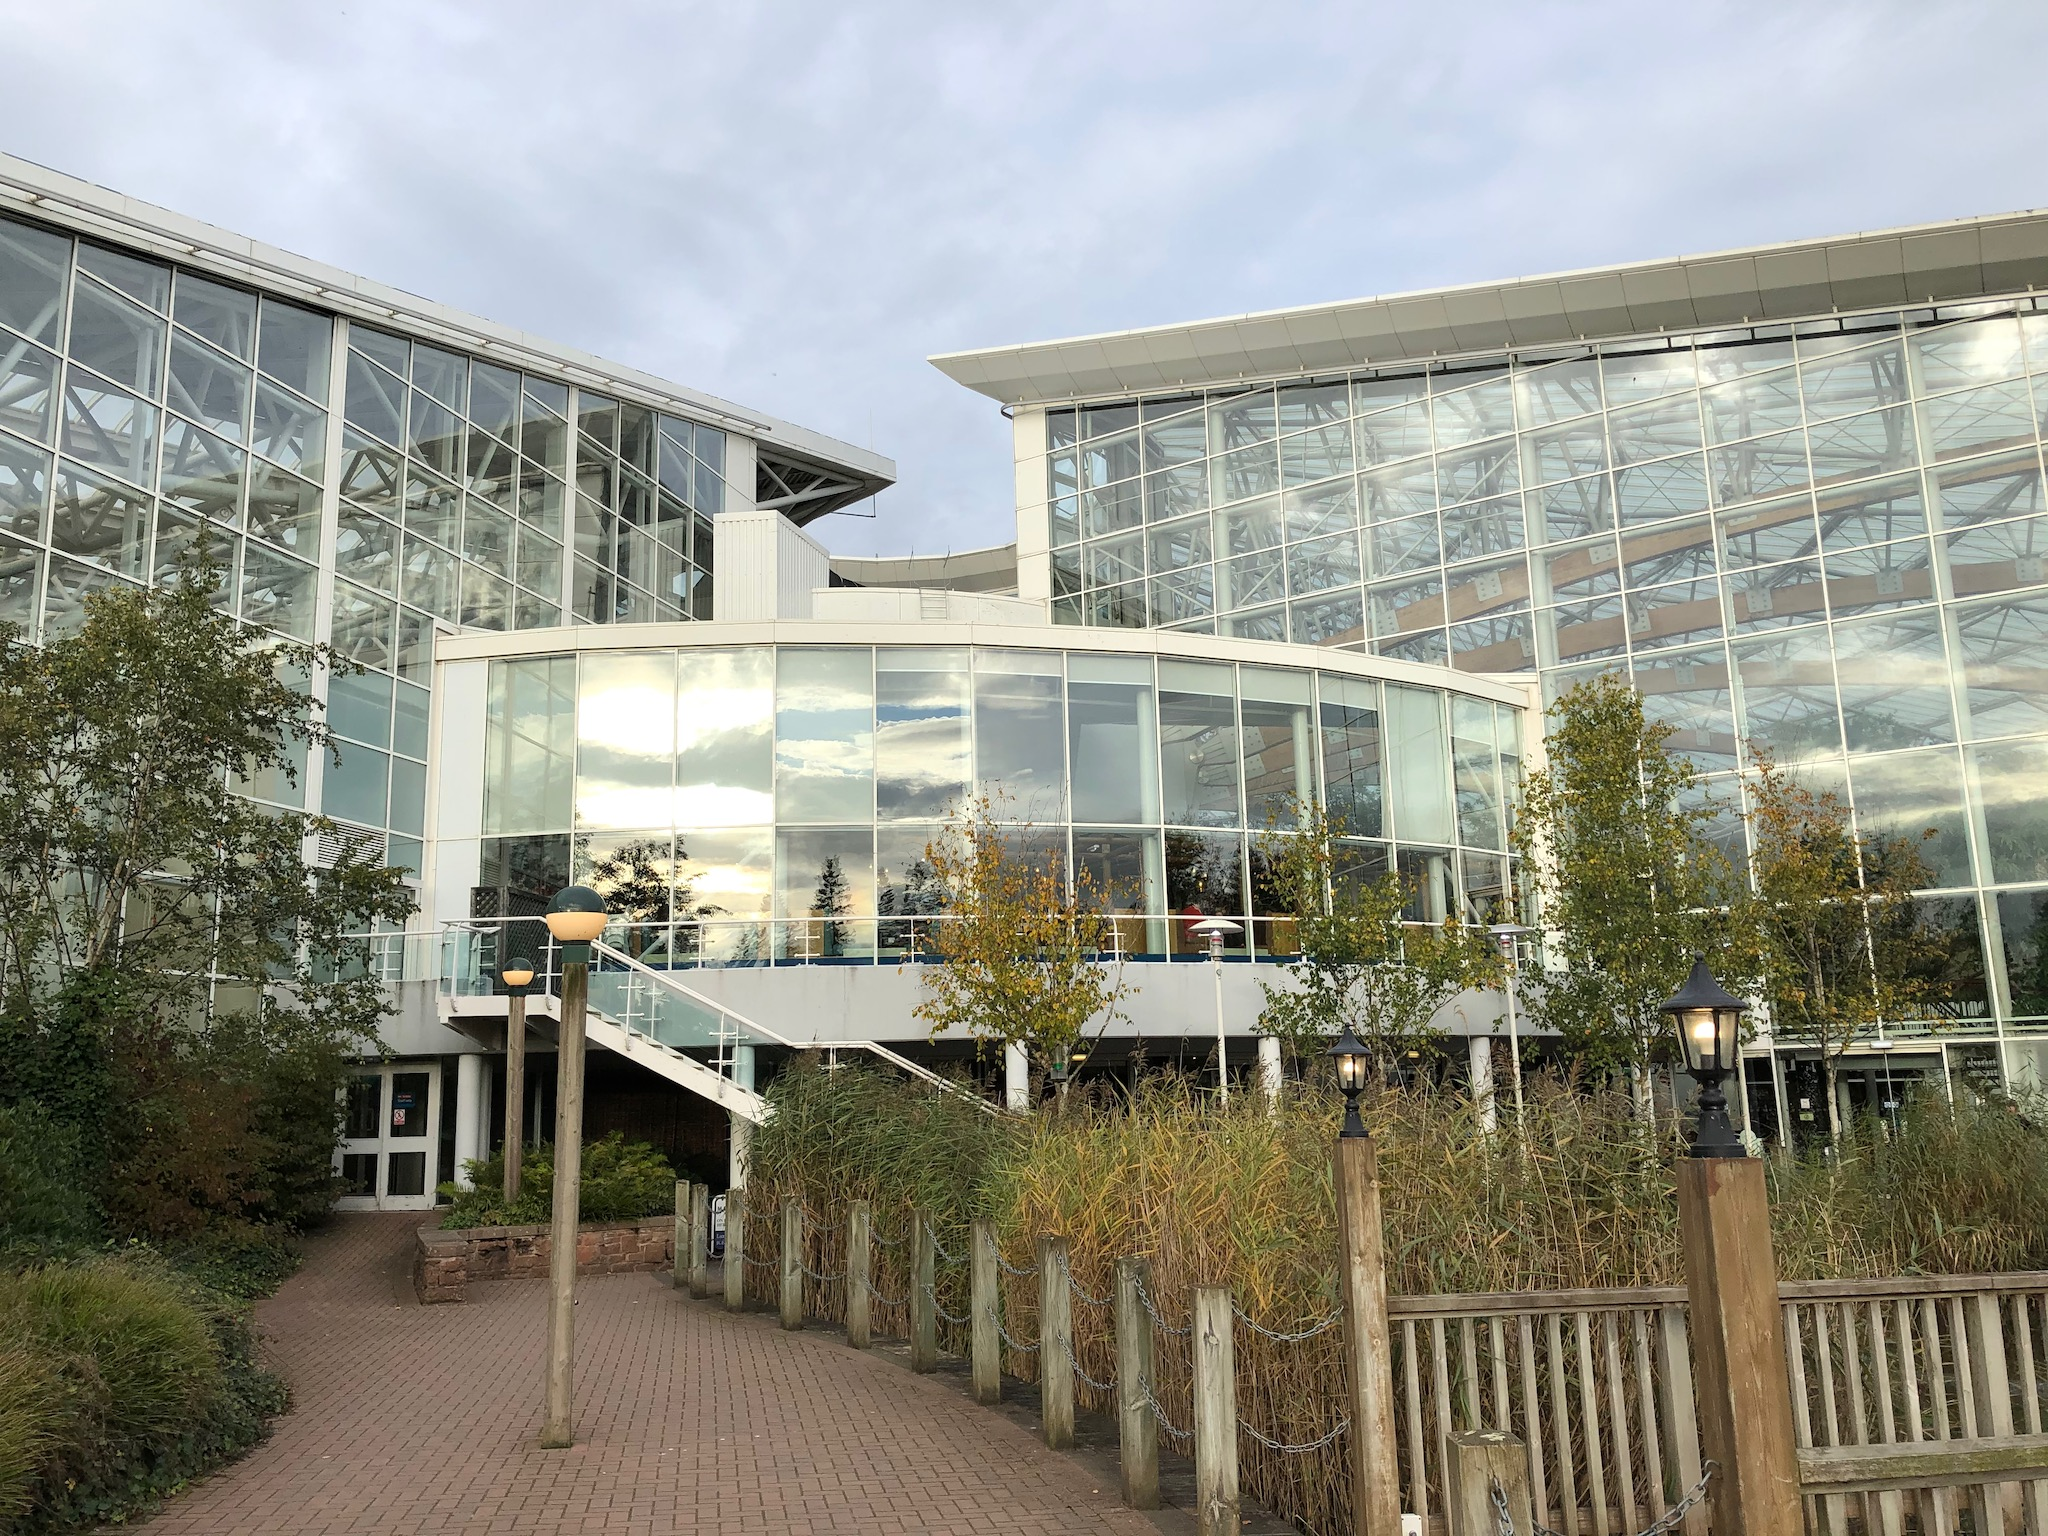 Photo of the village centre at Center Parcs Whinfell Forest